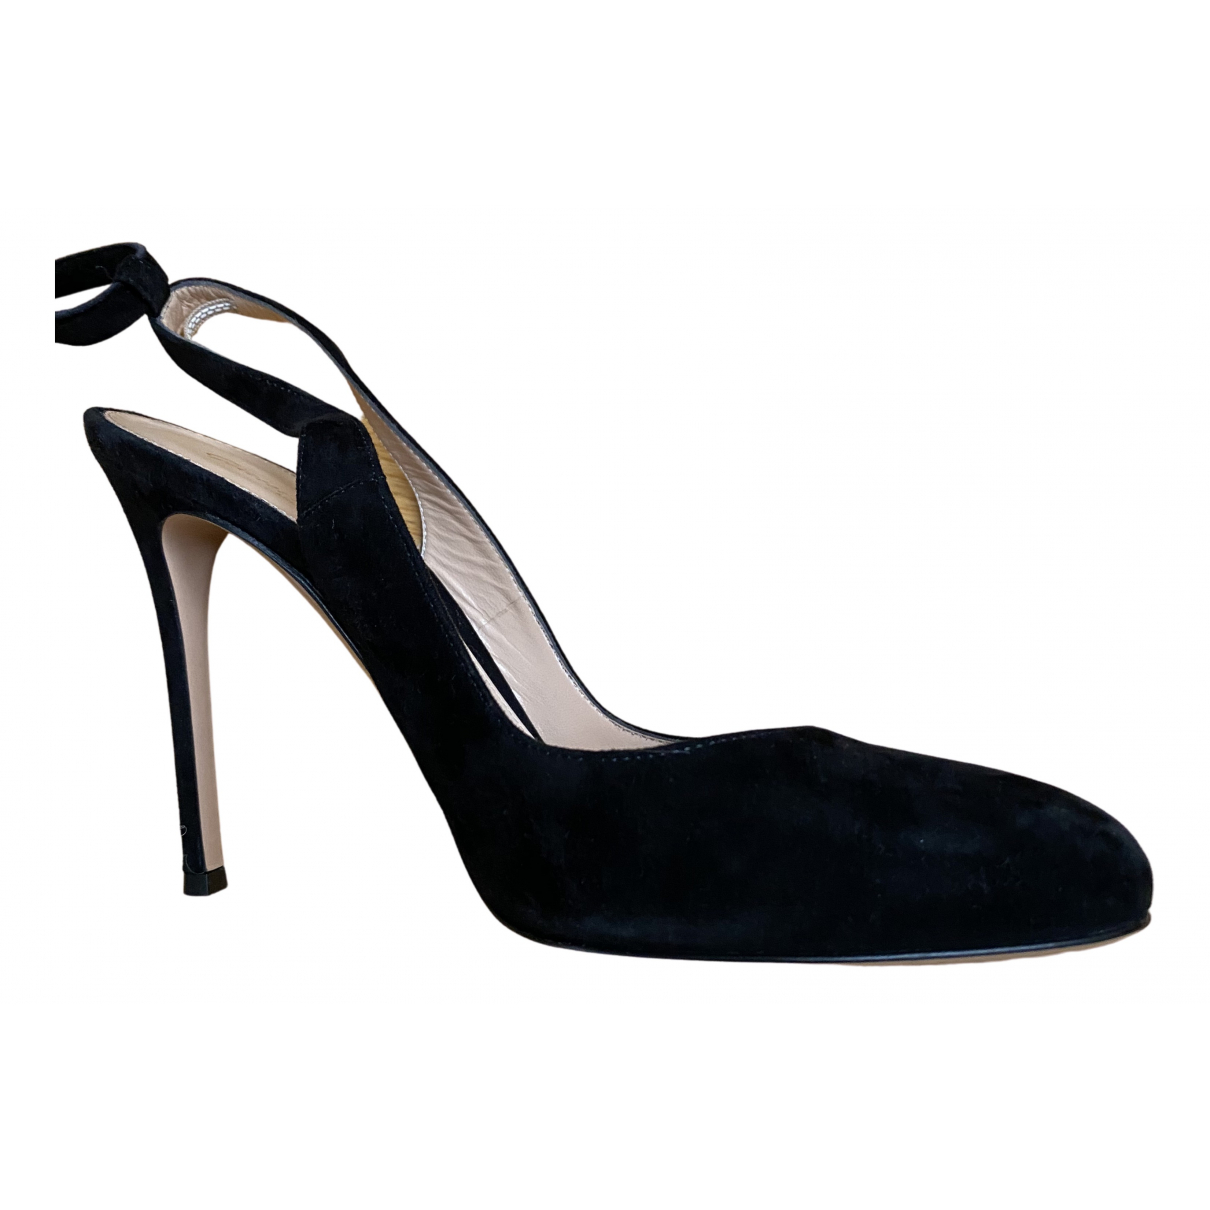 Gianvito Rossi \N Pumps in  Schwarz Veloursleder